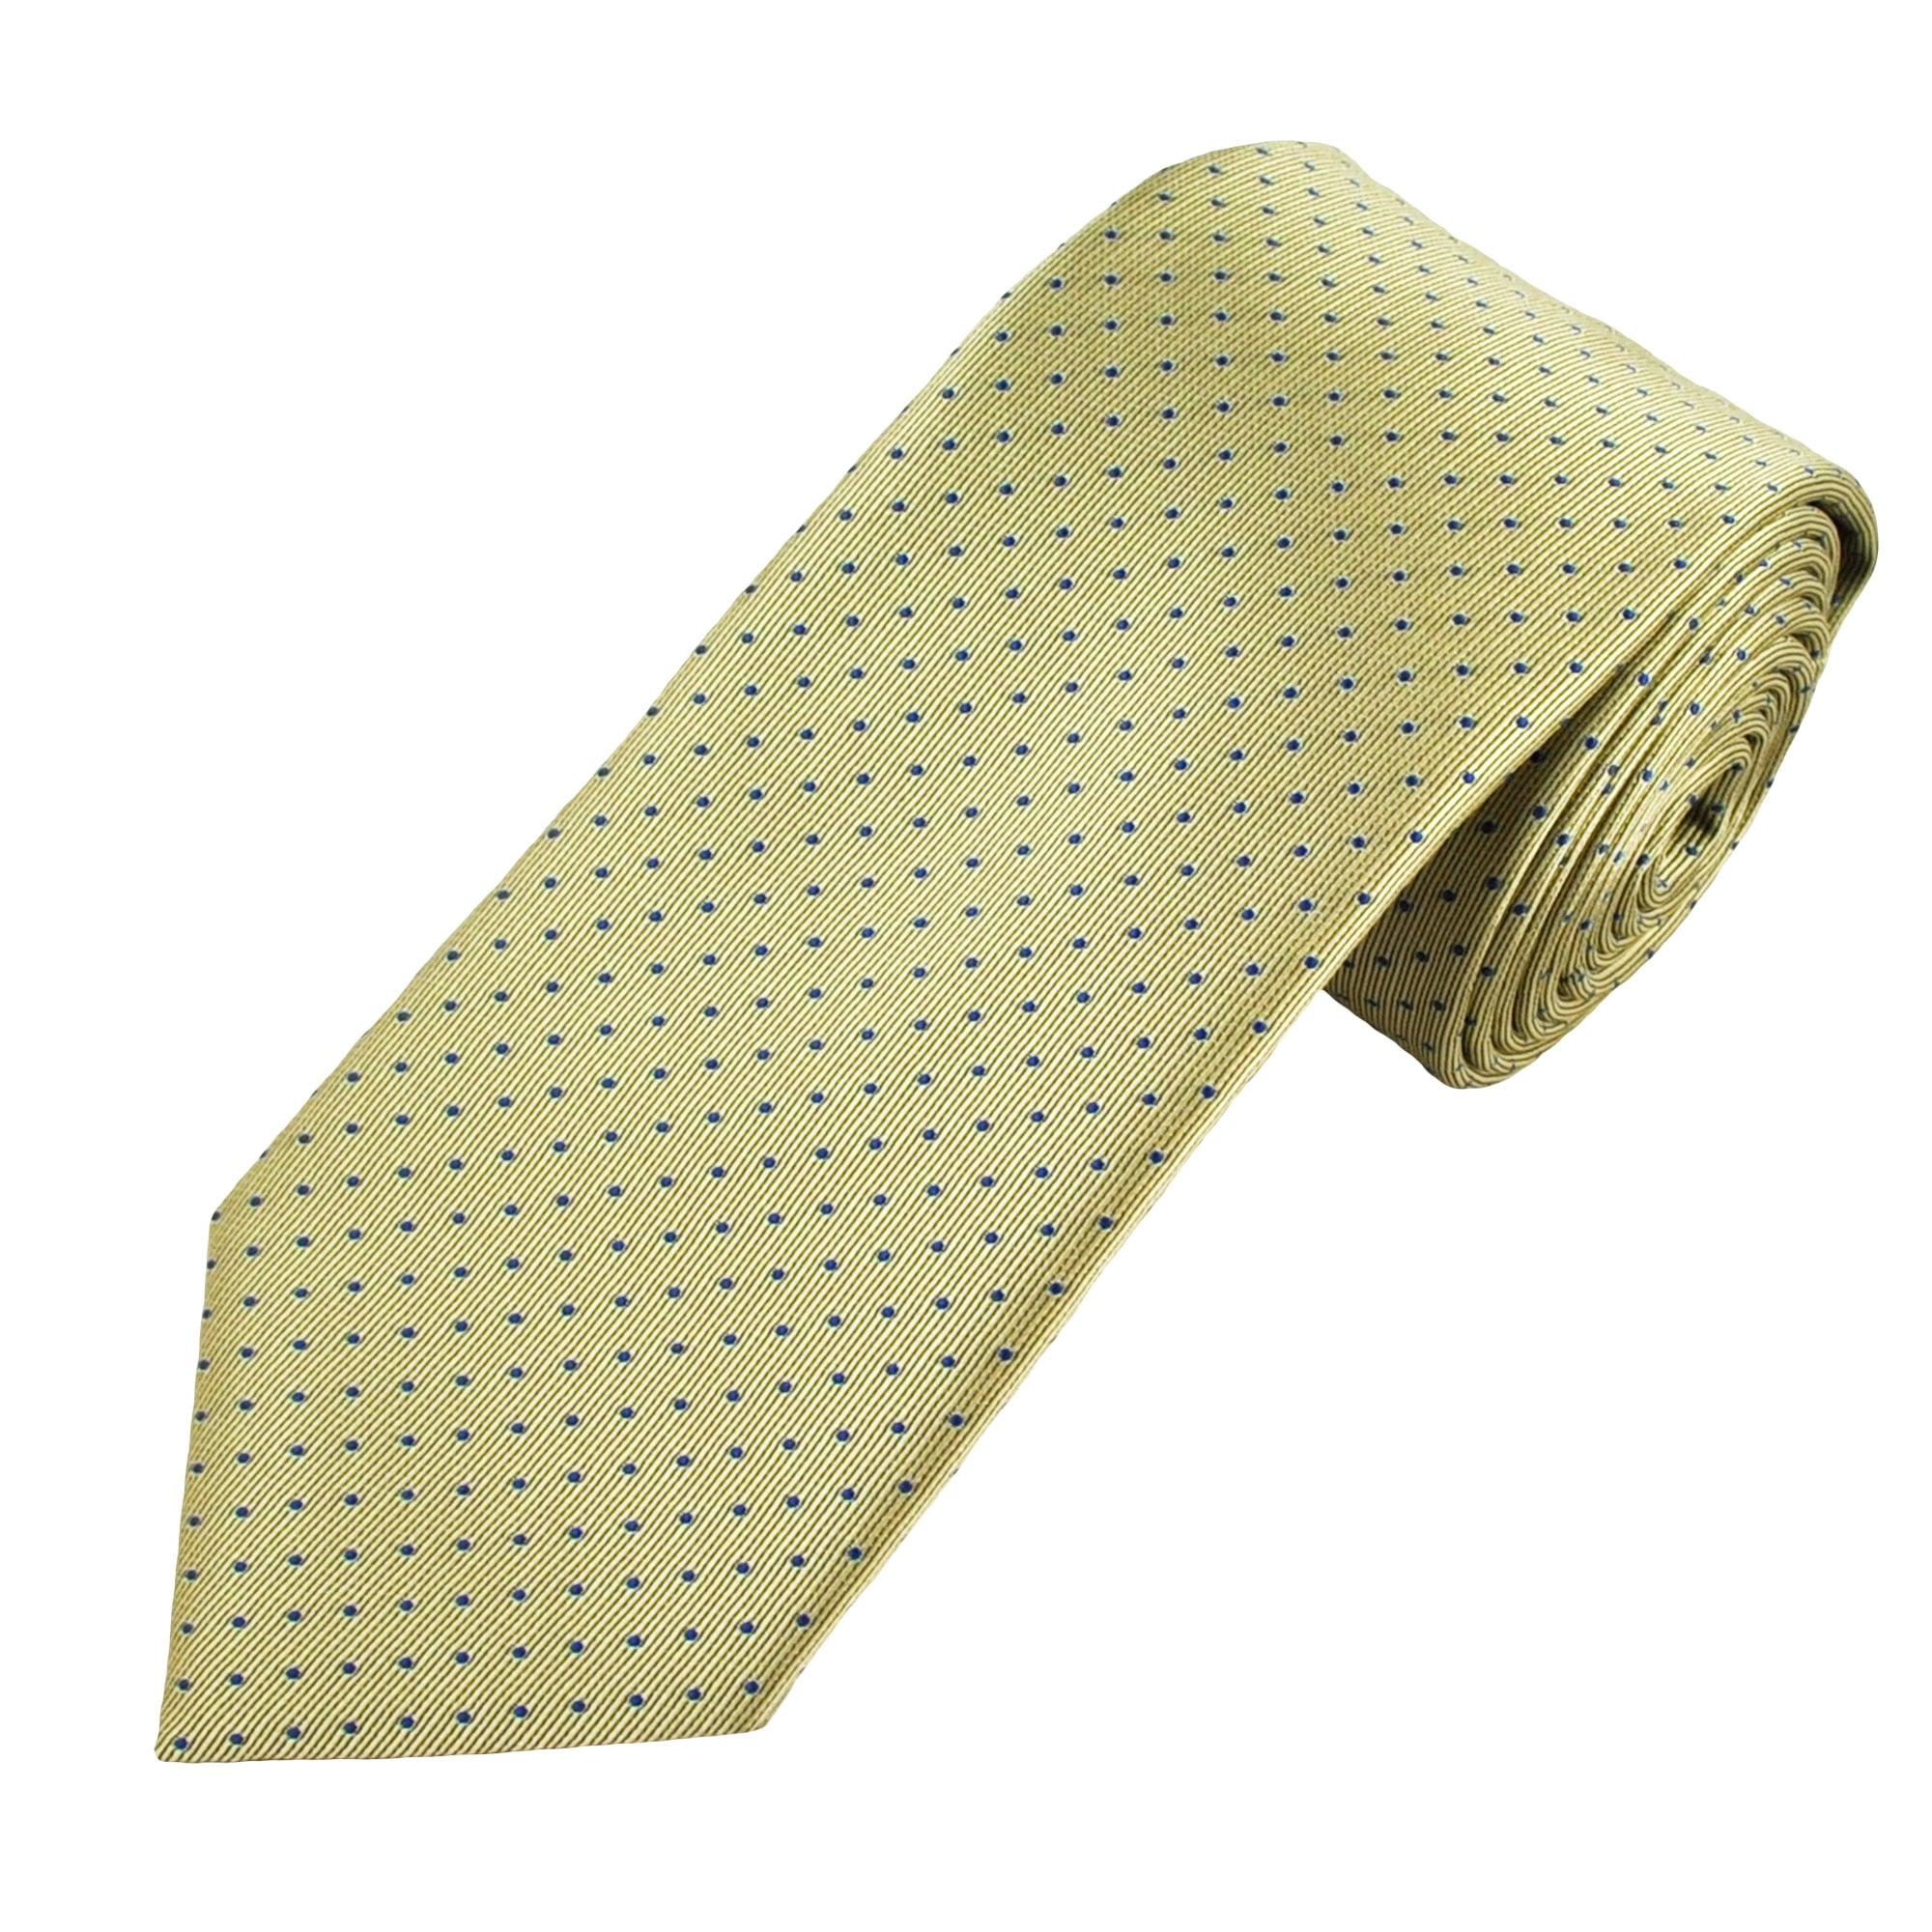 You searched for: mens yellow ties! Etsy is the home to thousands of handmade, vintage, and one-of-a-kind products and gifts related to your search. No matter what you're looking for or where you are in the world, our global marketplace of sellers can help you find unique and affordable options. Let's get started!